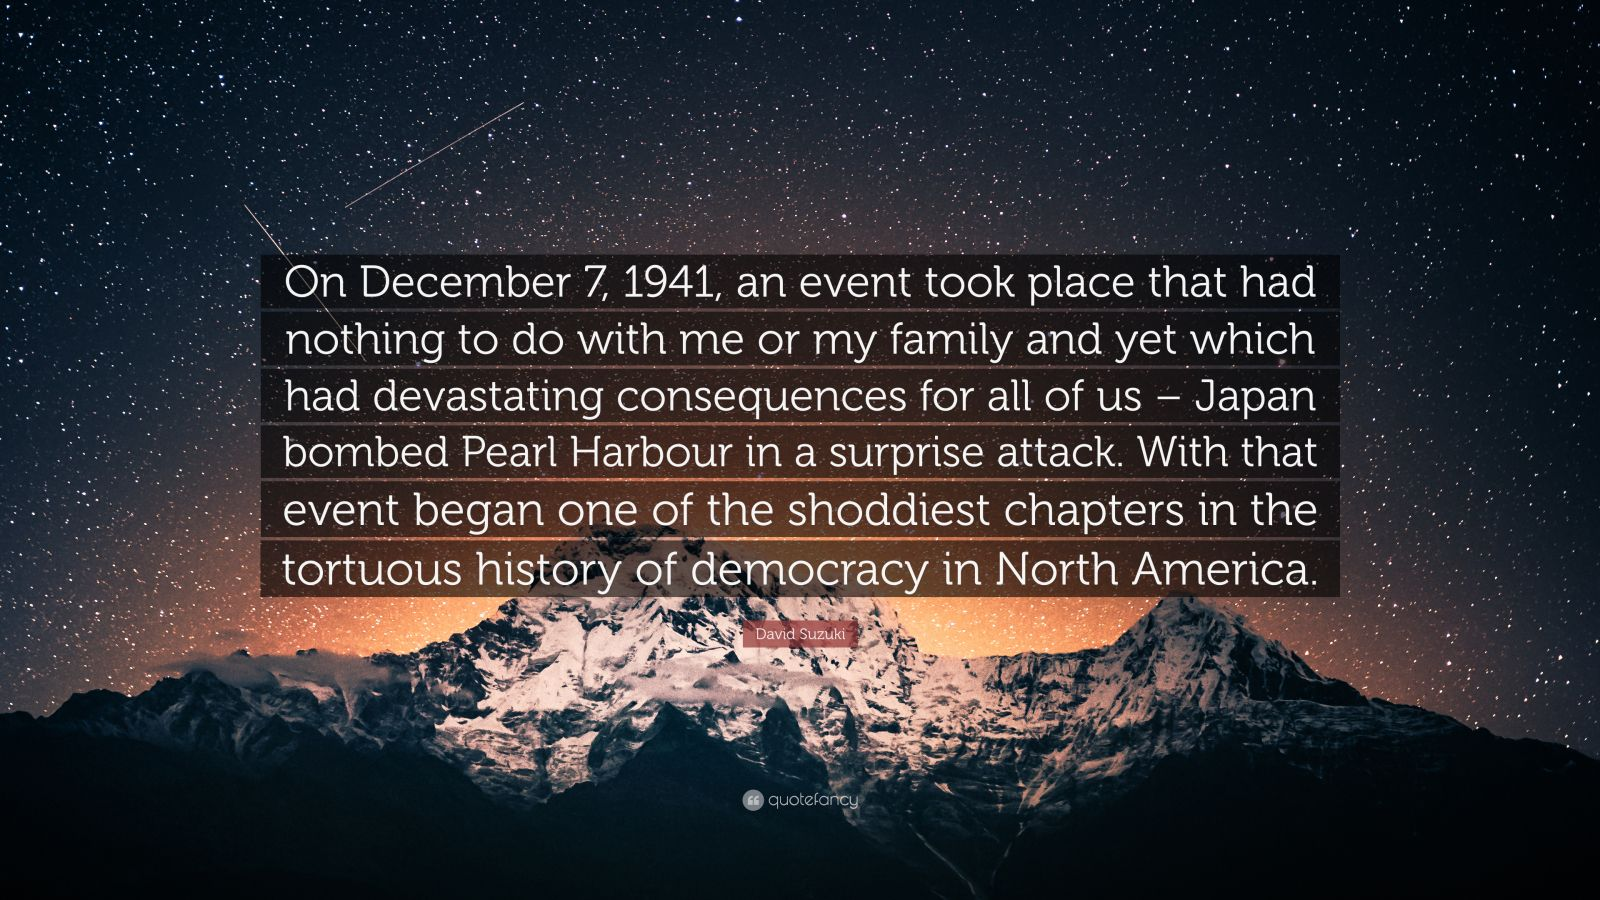 """David Suzuki Quote: """"On December 7, 1941, an event took place that had nothing to do with me or my family and yet which had devastating consequences for all of us – Japan bombed Pearl Harbour in a surprise attack. With that event began one of the shoddiest chapters in the tortuous history of democracy in North America."""""""